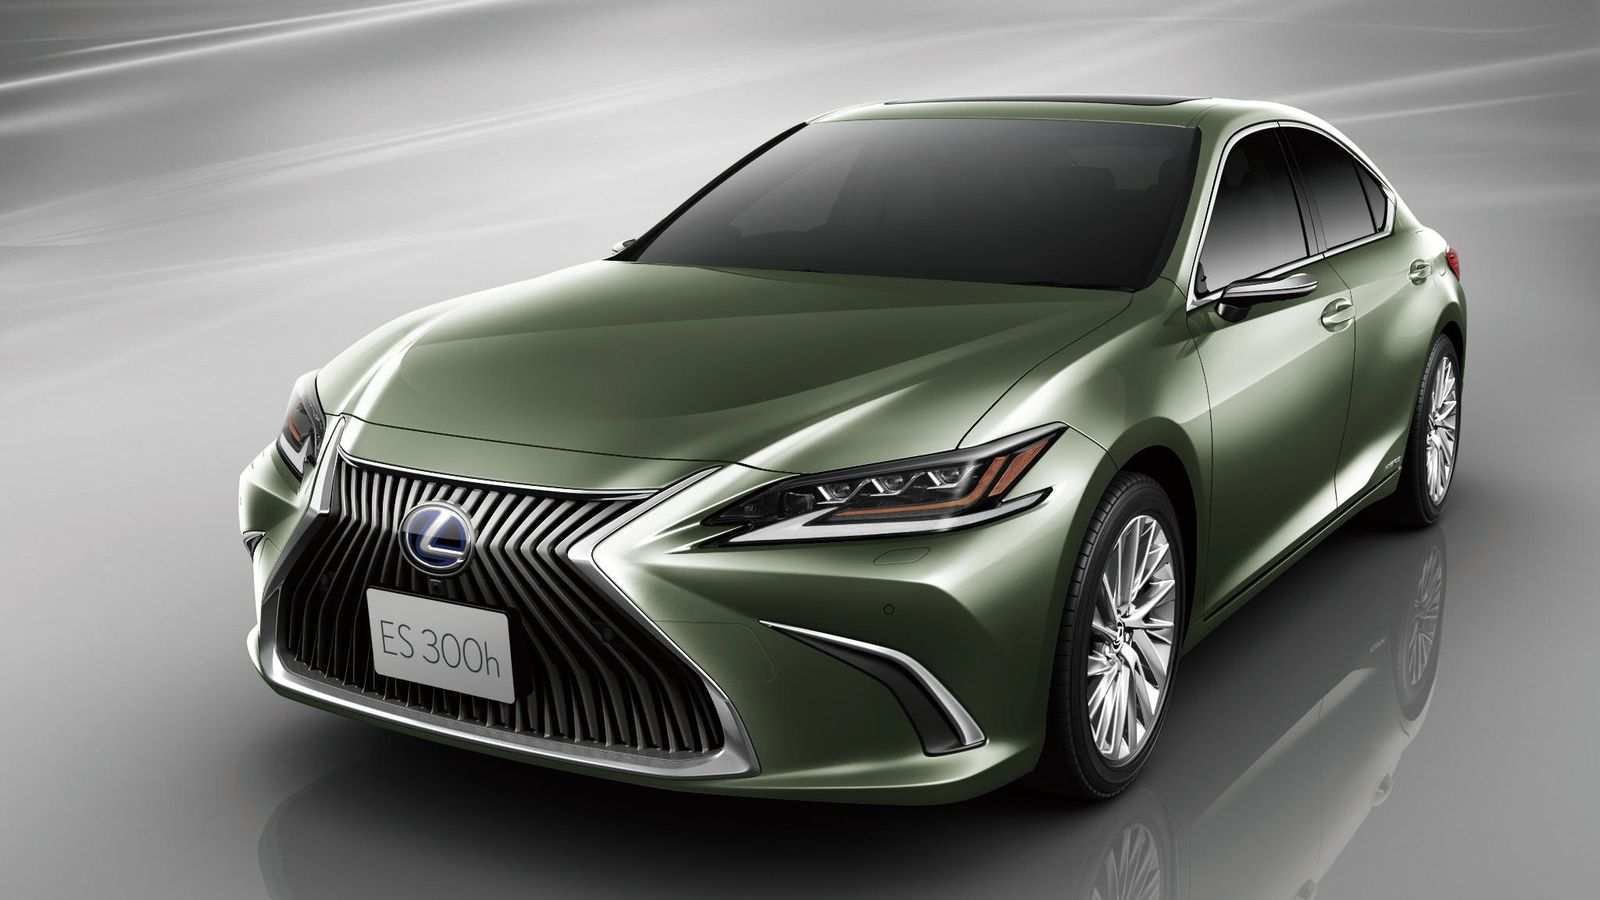 57 Best Review Lexus Es 2020 Japan Review with Lexus Es 2020 Japan